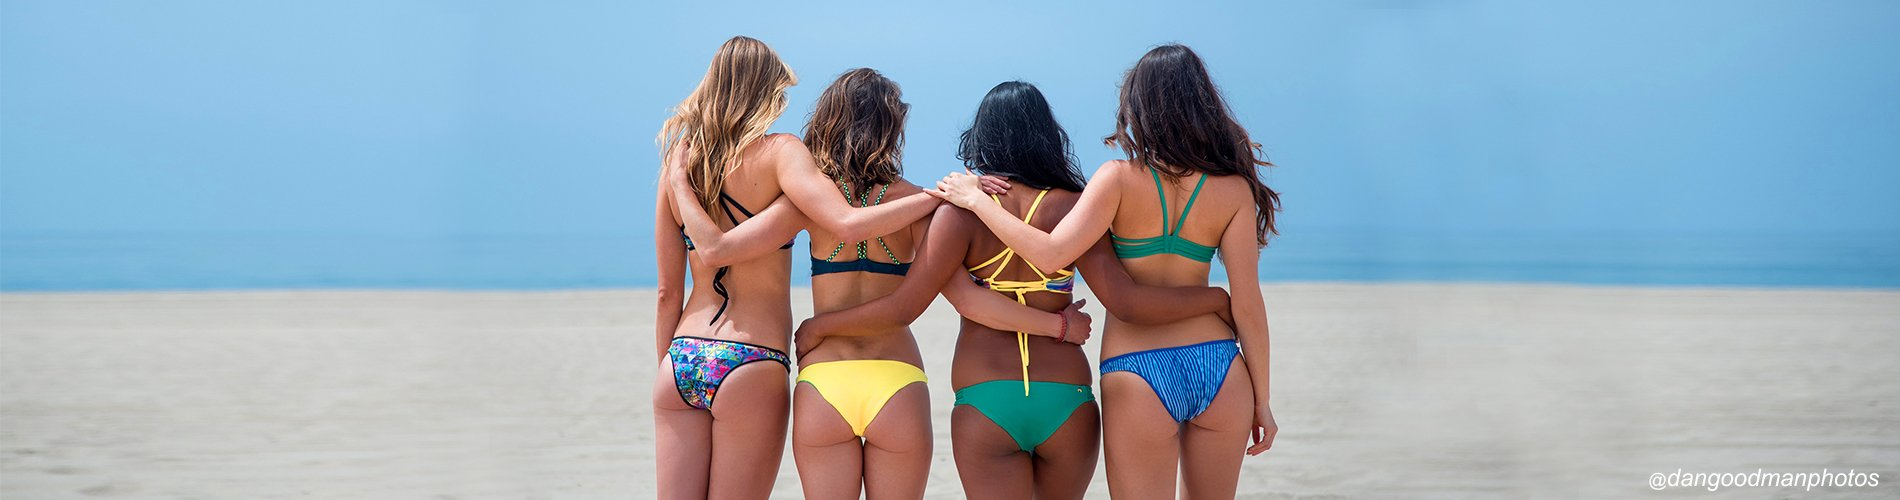 Four friends come together to play beach volleyball Pepper Swimwear active lifestyle